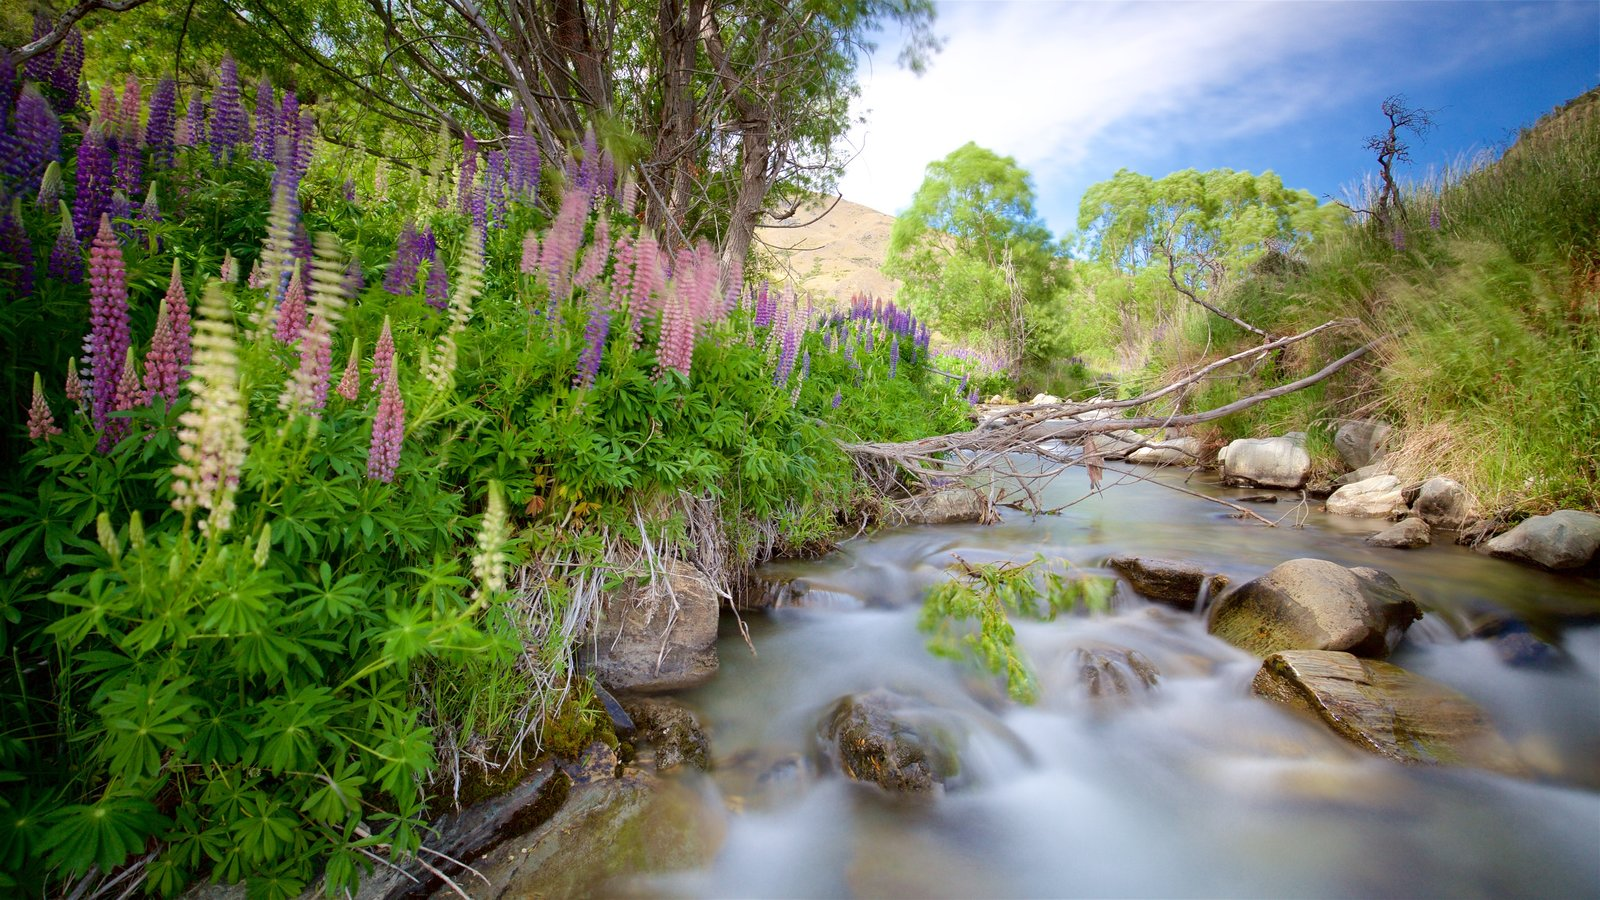 Queenstown showing tranquil scenes, a river or creek and wild flowers